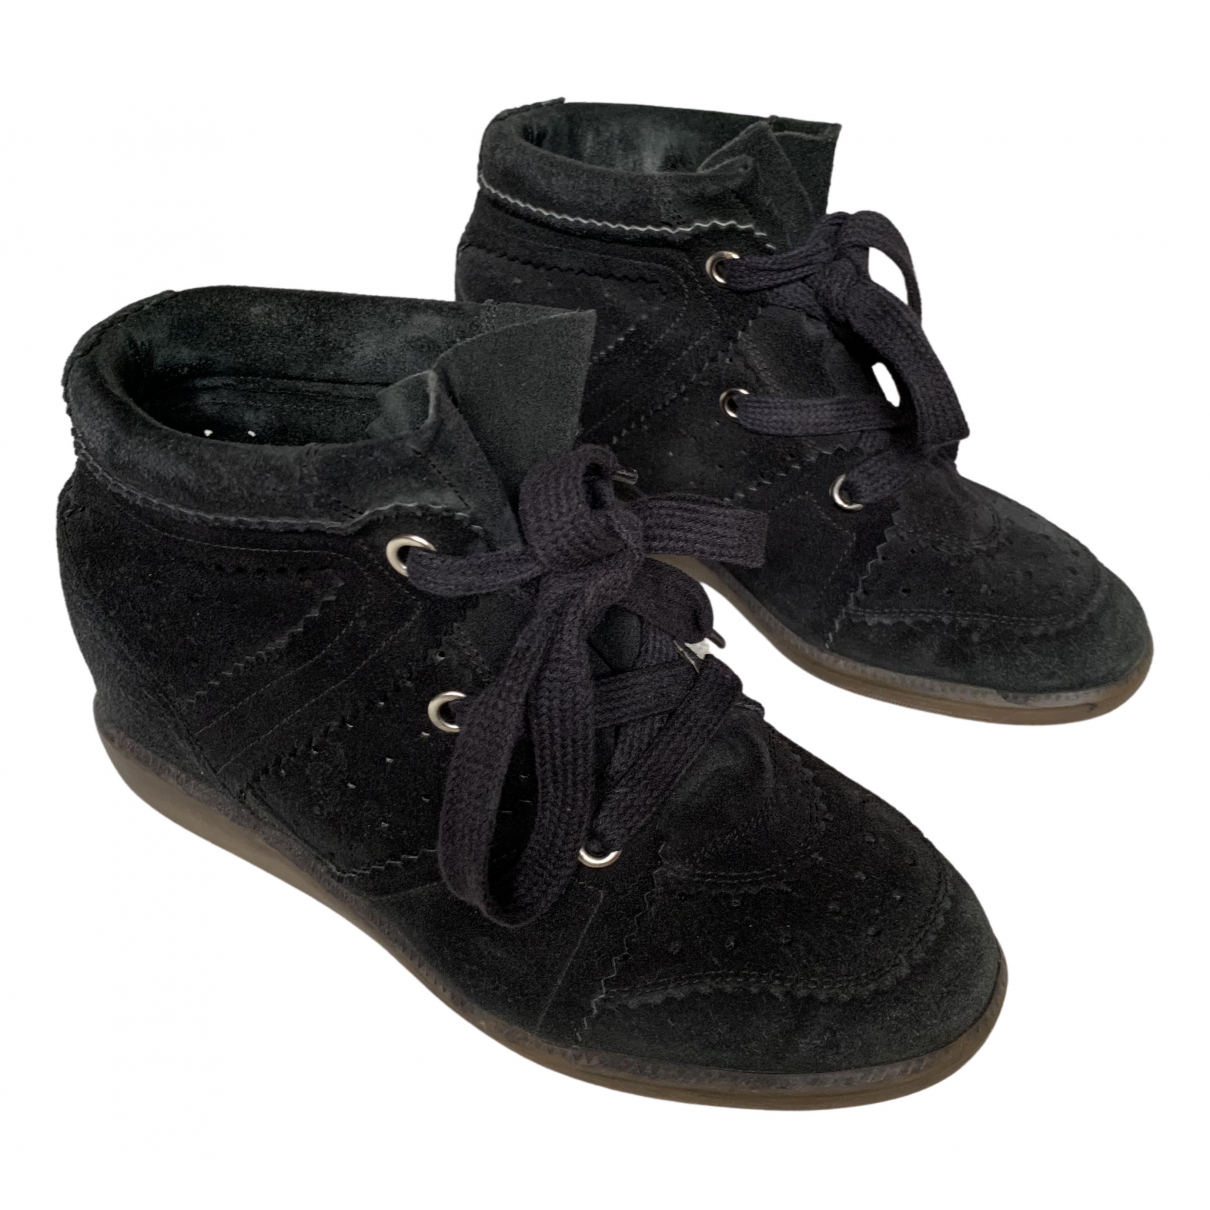 Isabel Marant Bobby Black Suede Trainers for Women 38 EU